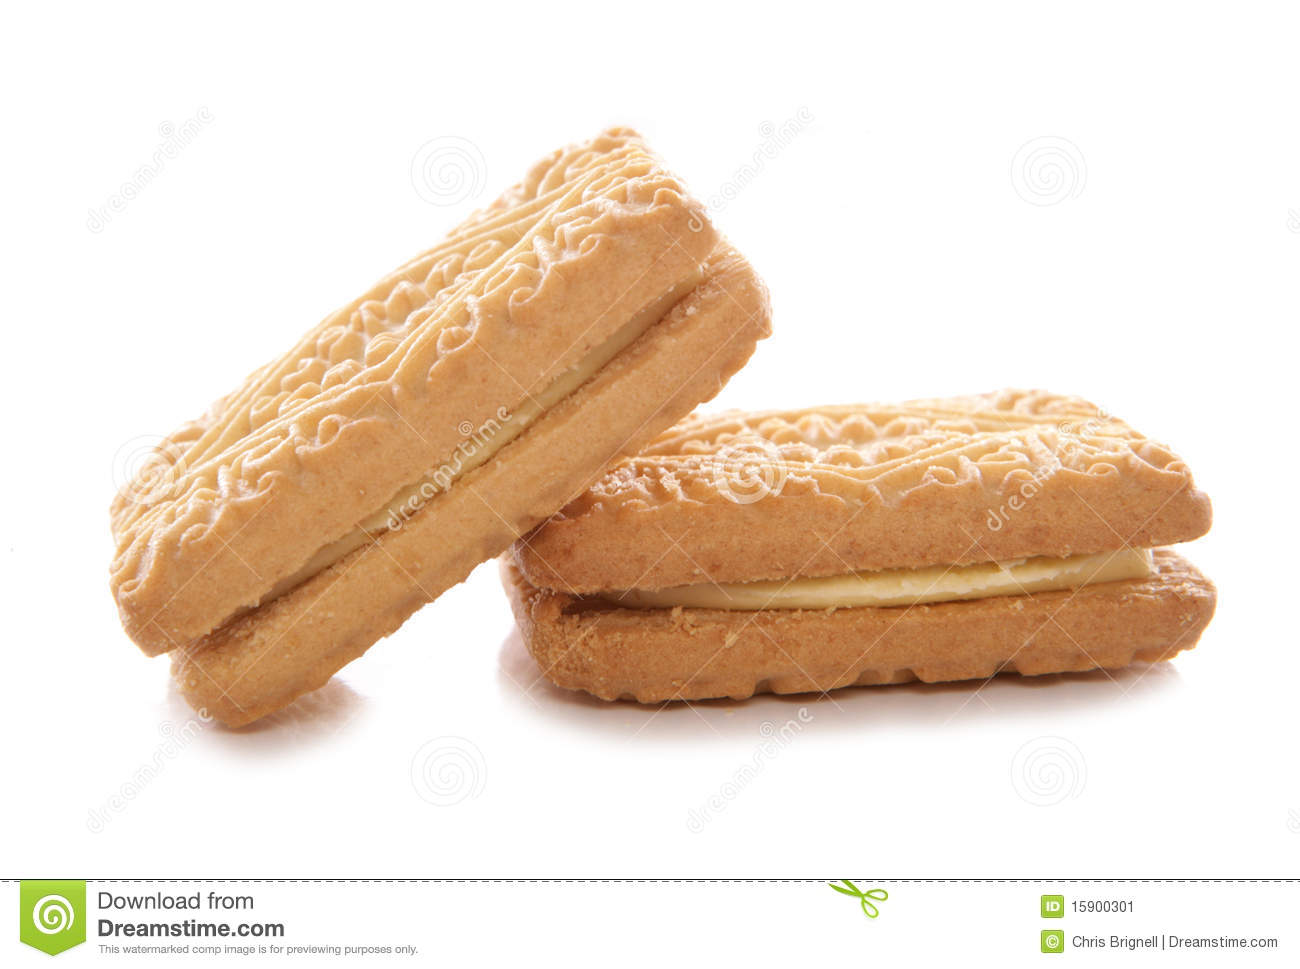 Custard Cream Biscuits Stock Image - Image: 15900301